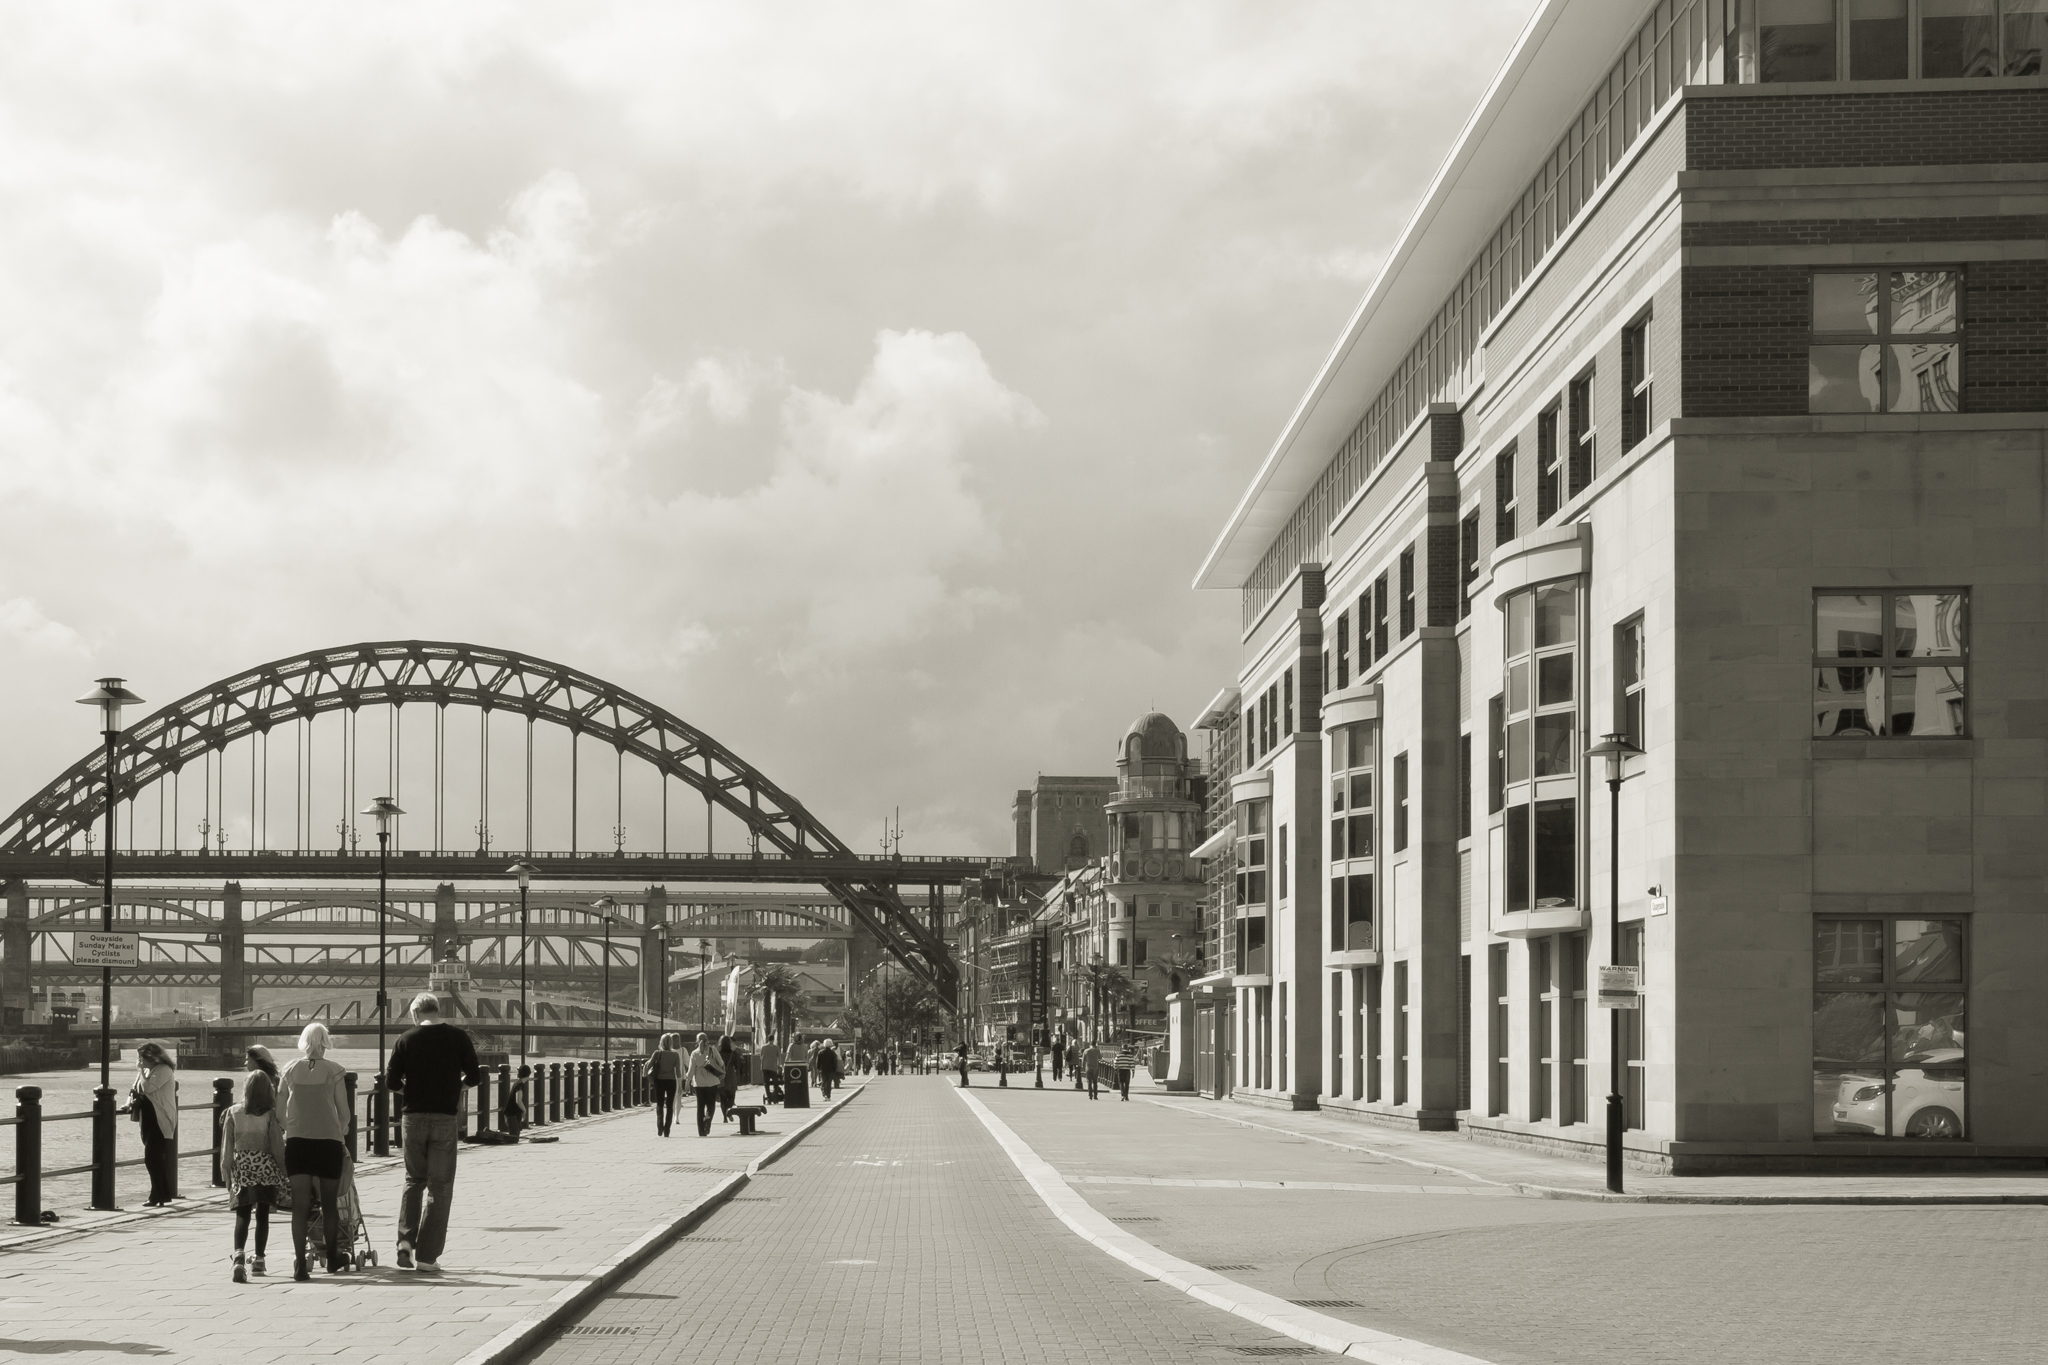 This view looks down the quayside toward the Tyne Bridge, from just opposite the new Millenium Bridge.